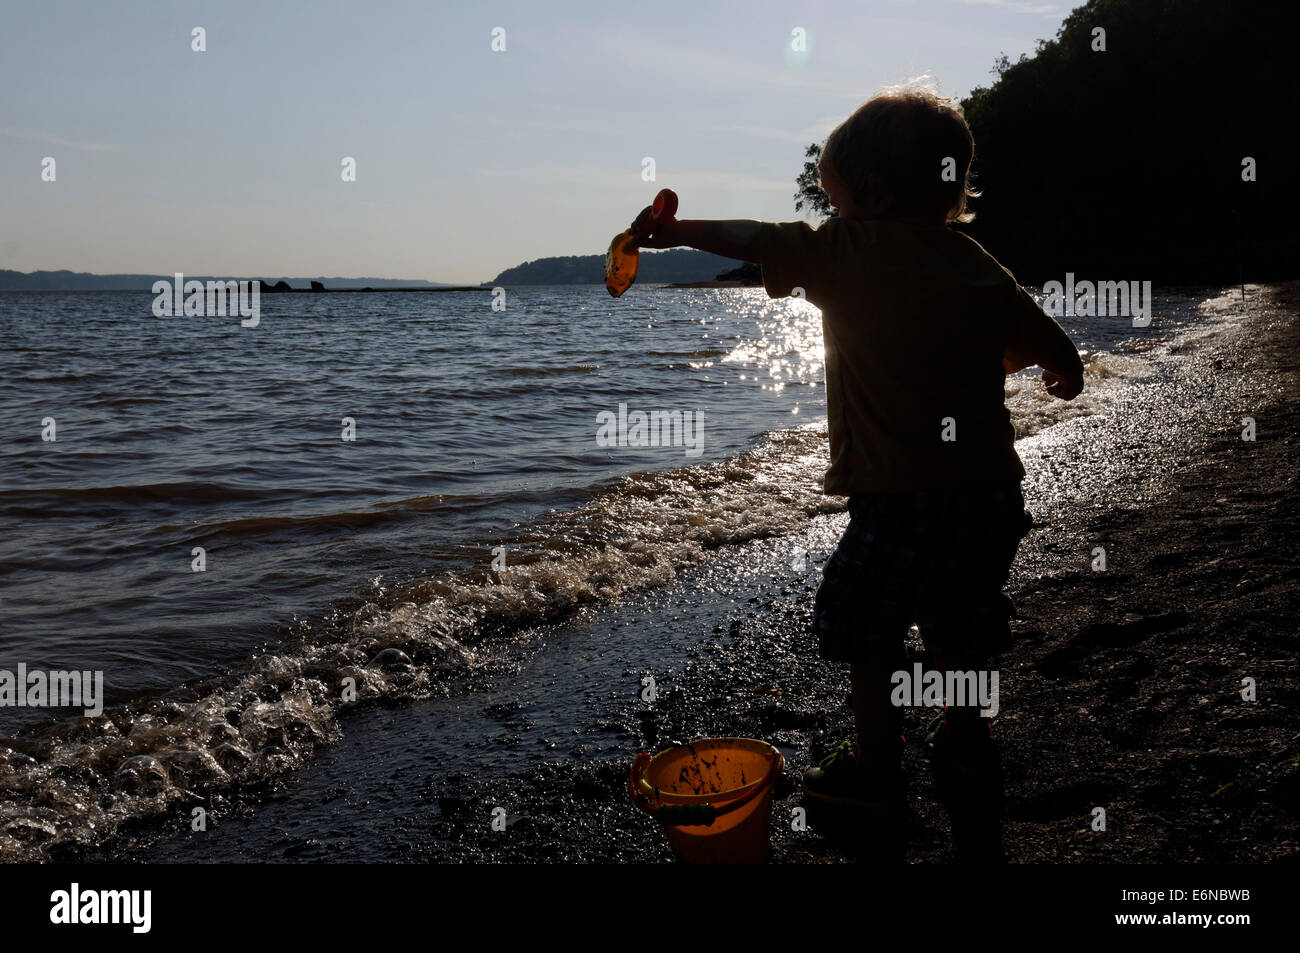 A young boy playing with a bucket and spade on the beach, Plage Jacques Cartier, Quebec on the St Lawrence shoreline - Stock Image